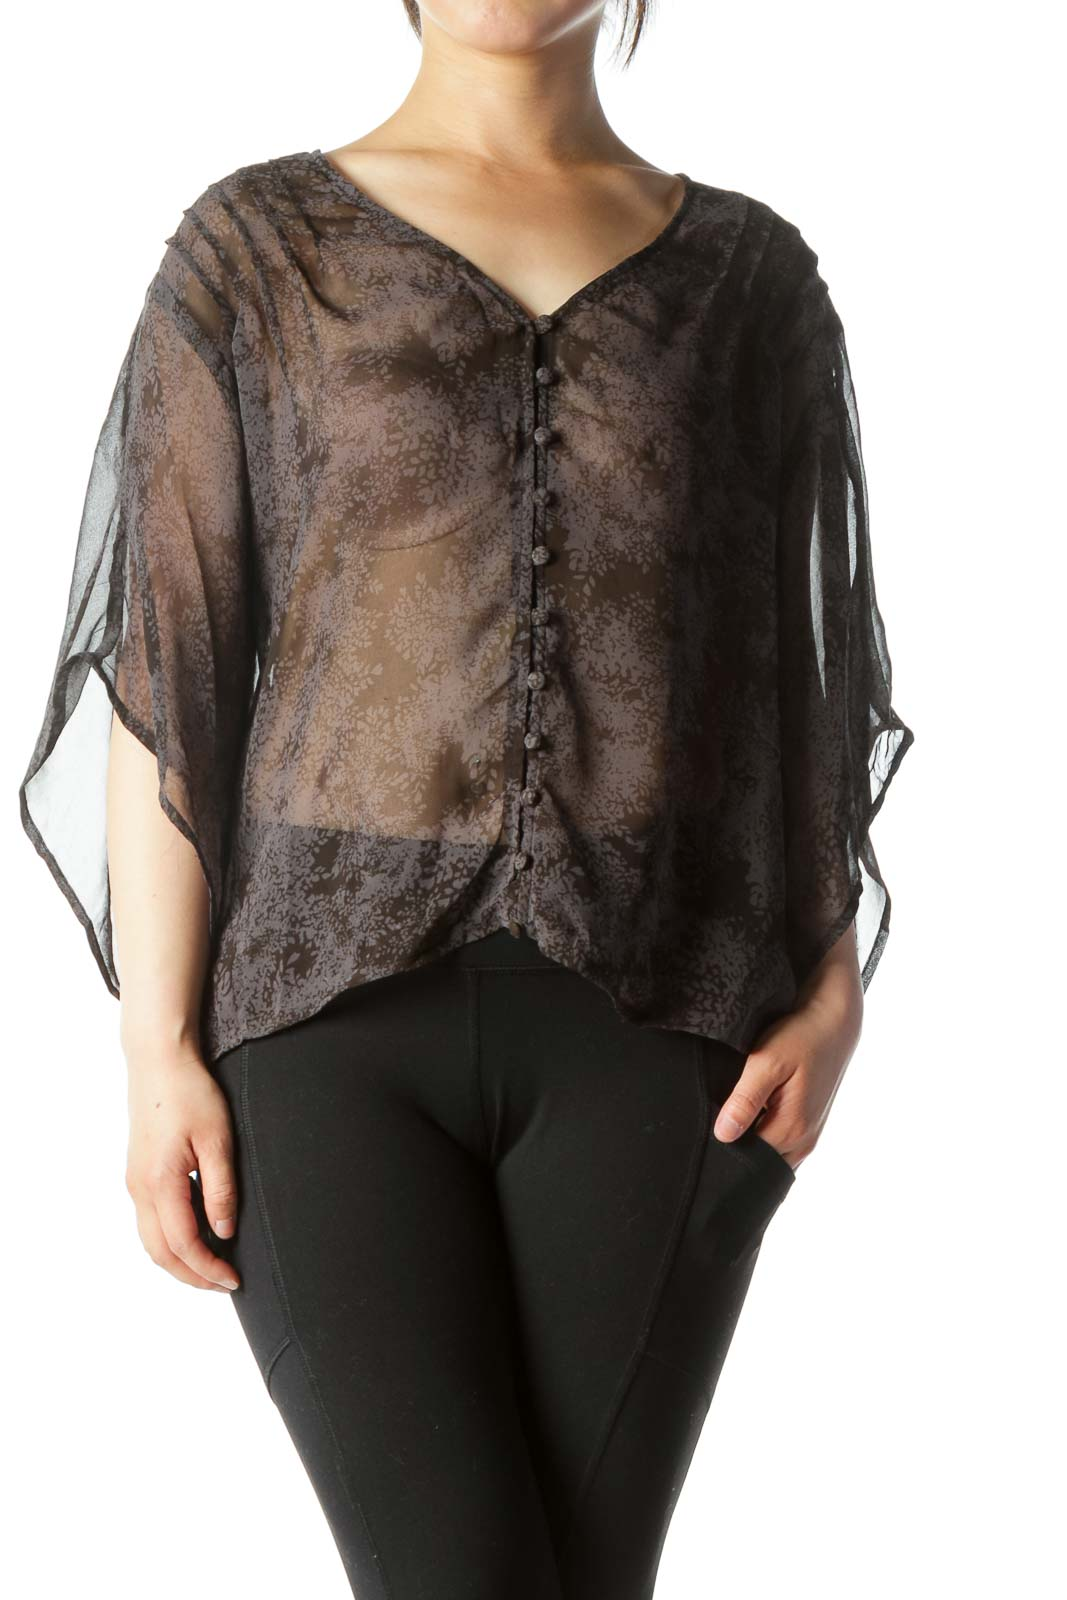 Black Gray printed Buttoned See-Through Short Bat Sleeves Top